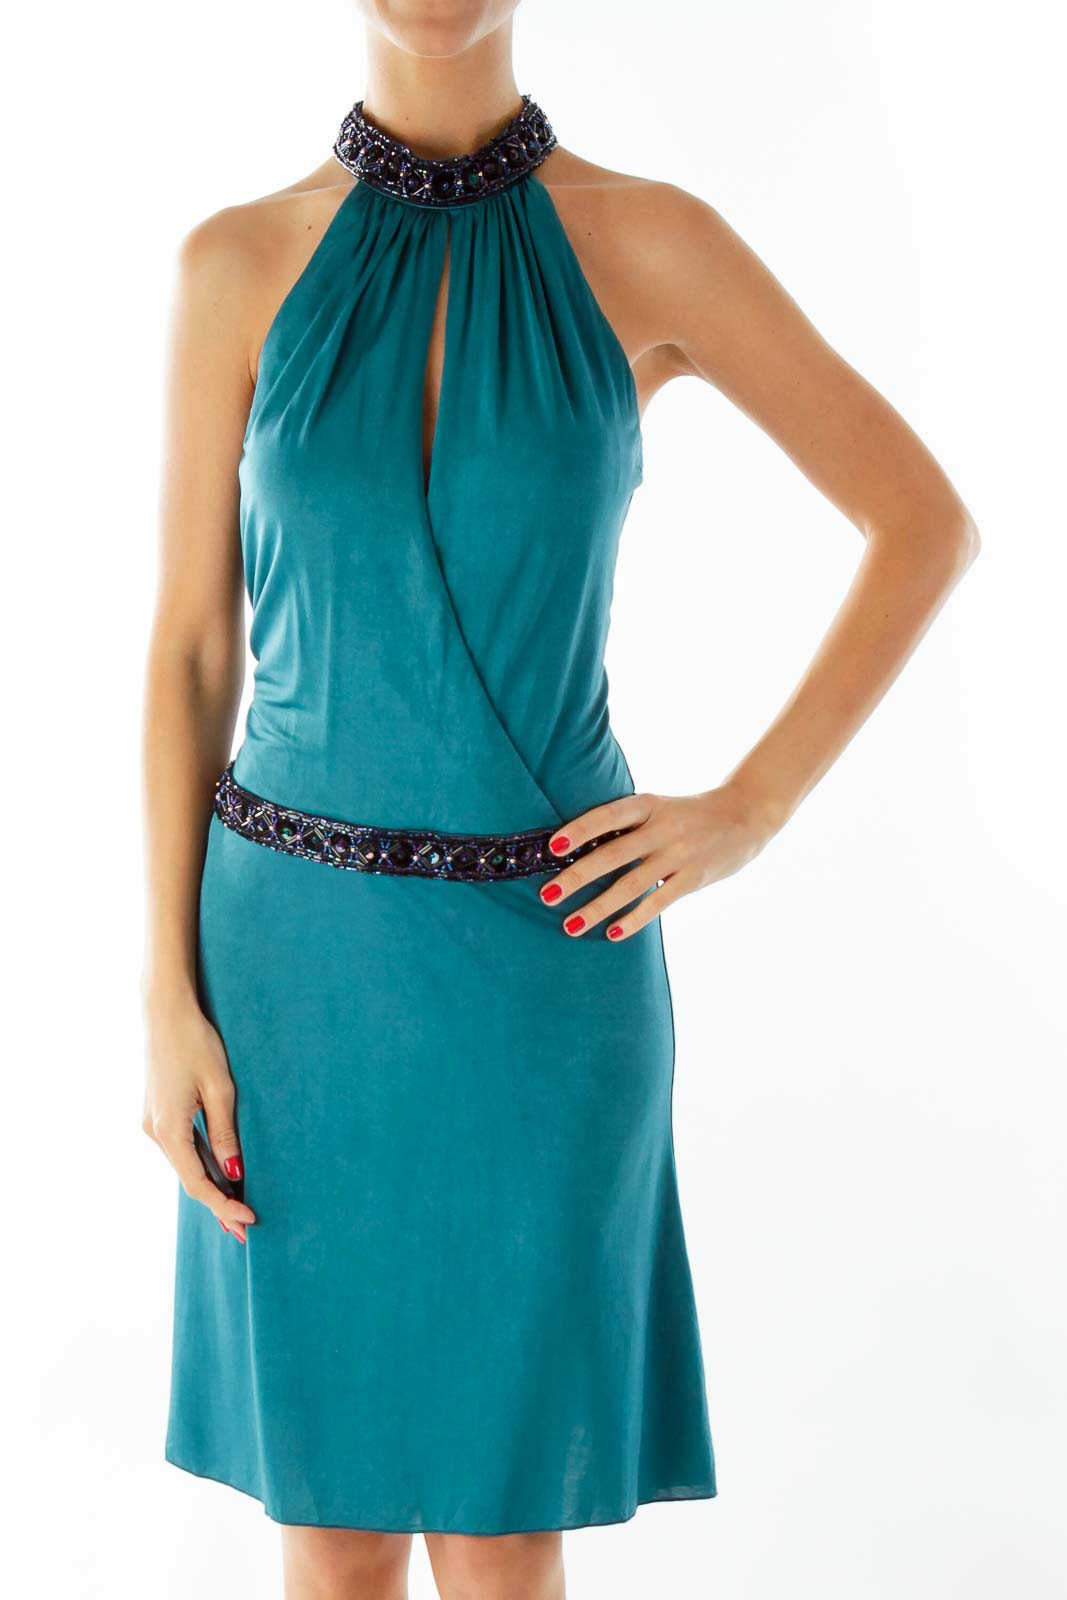 Teal Green Beaded Cocktail Dress Front